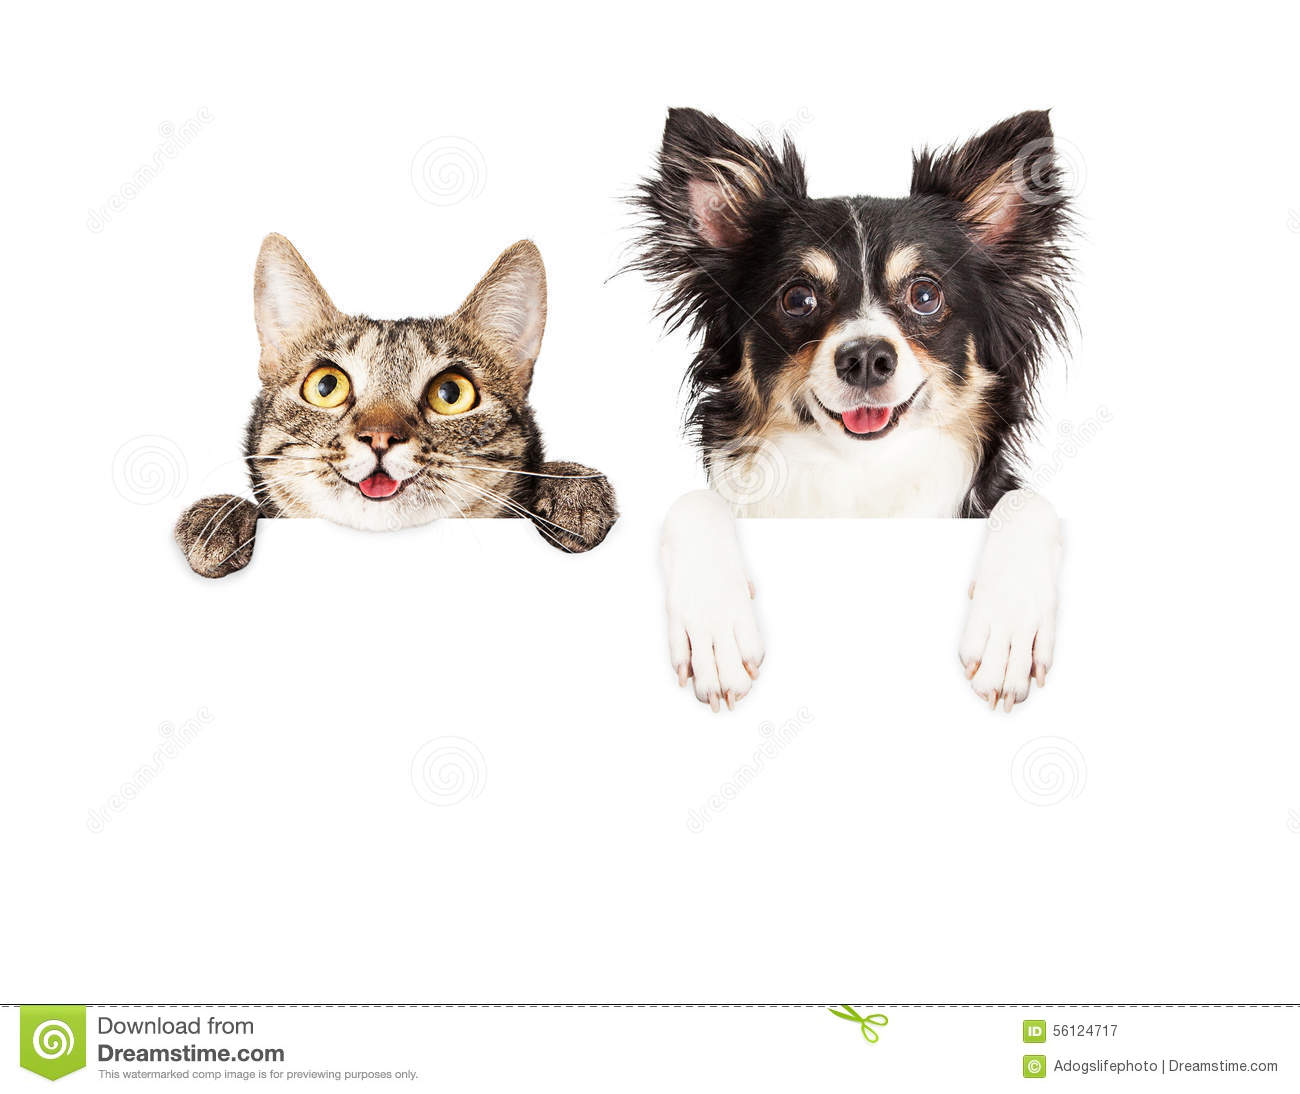 Happy Dog And Cat Over White Banner Stock Photo - Image: 56124717 Smiling Dog And Cat